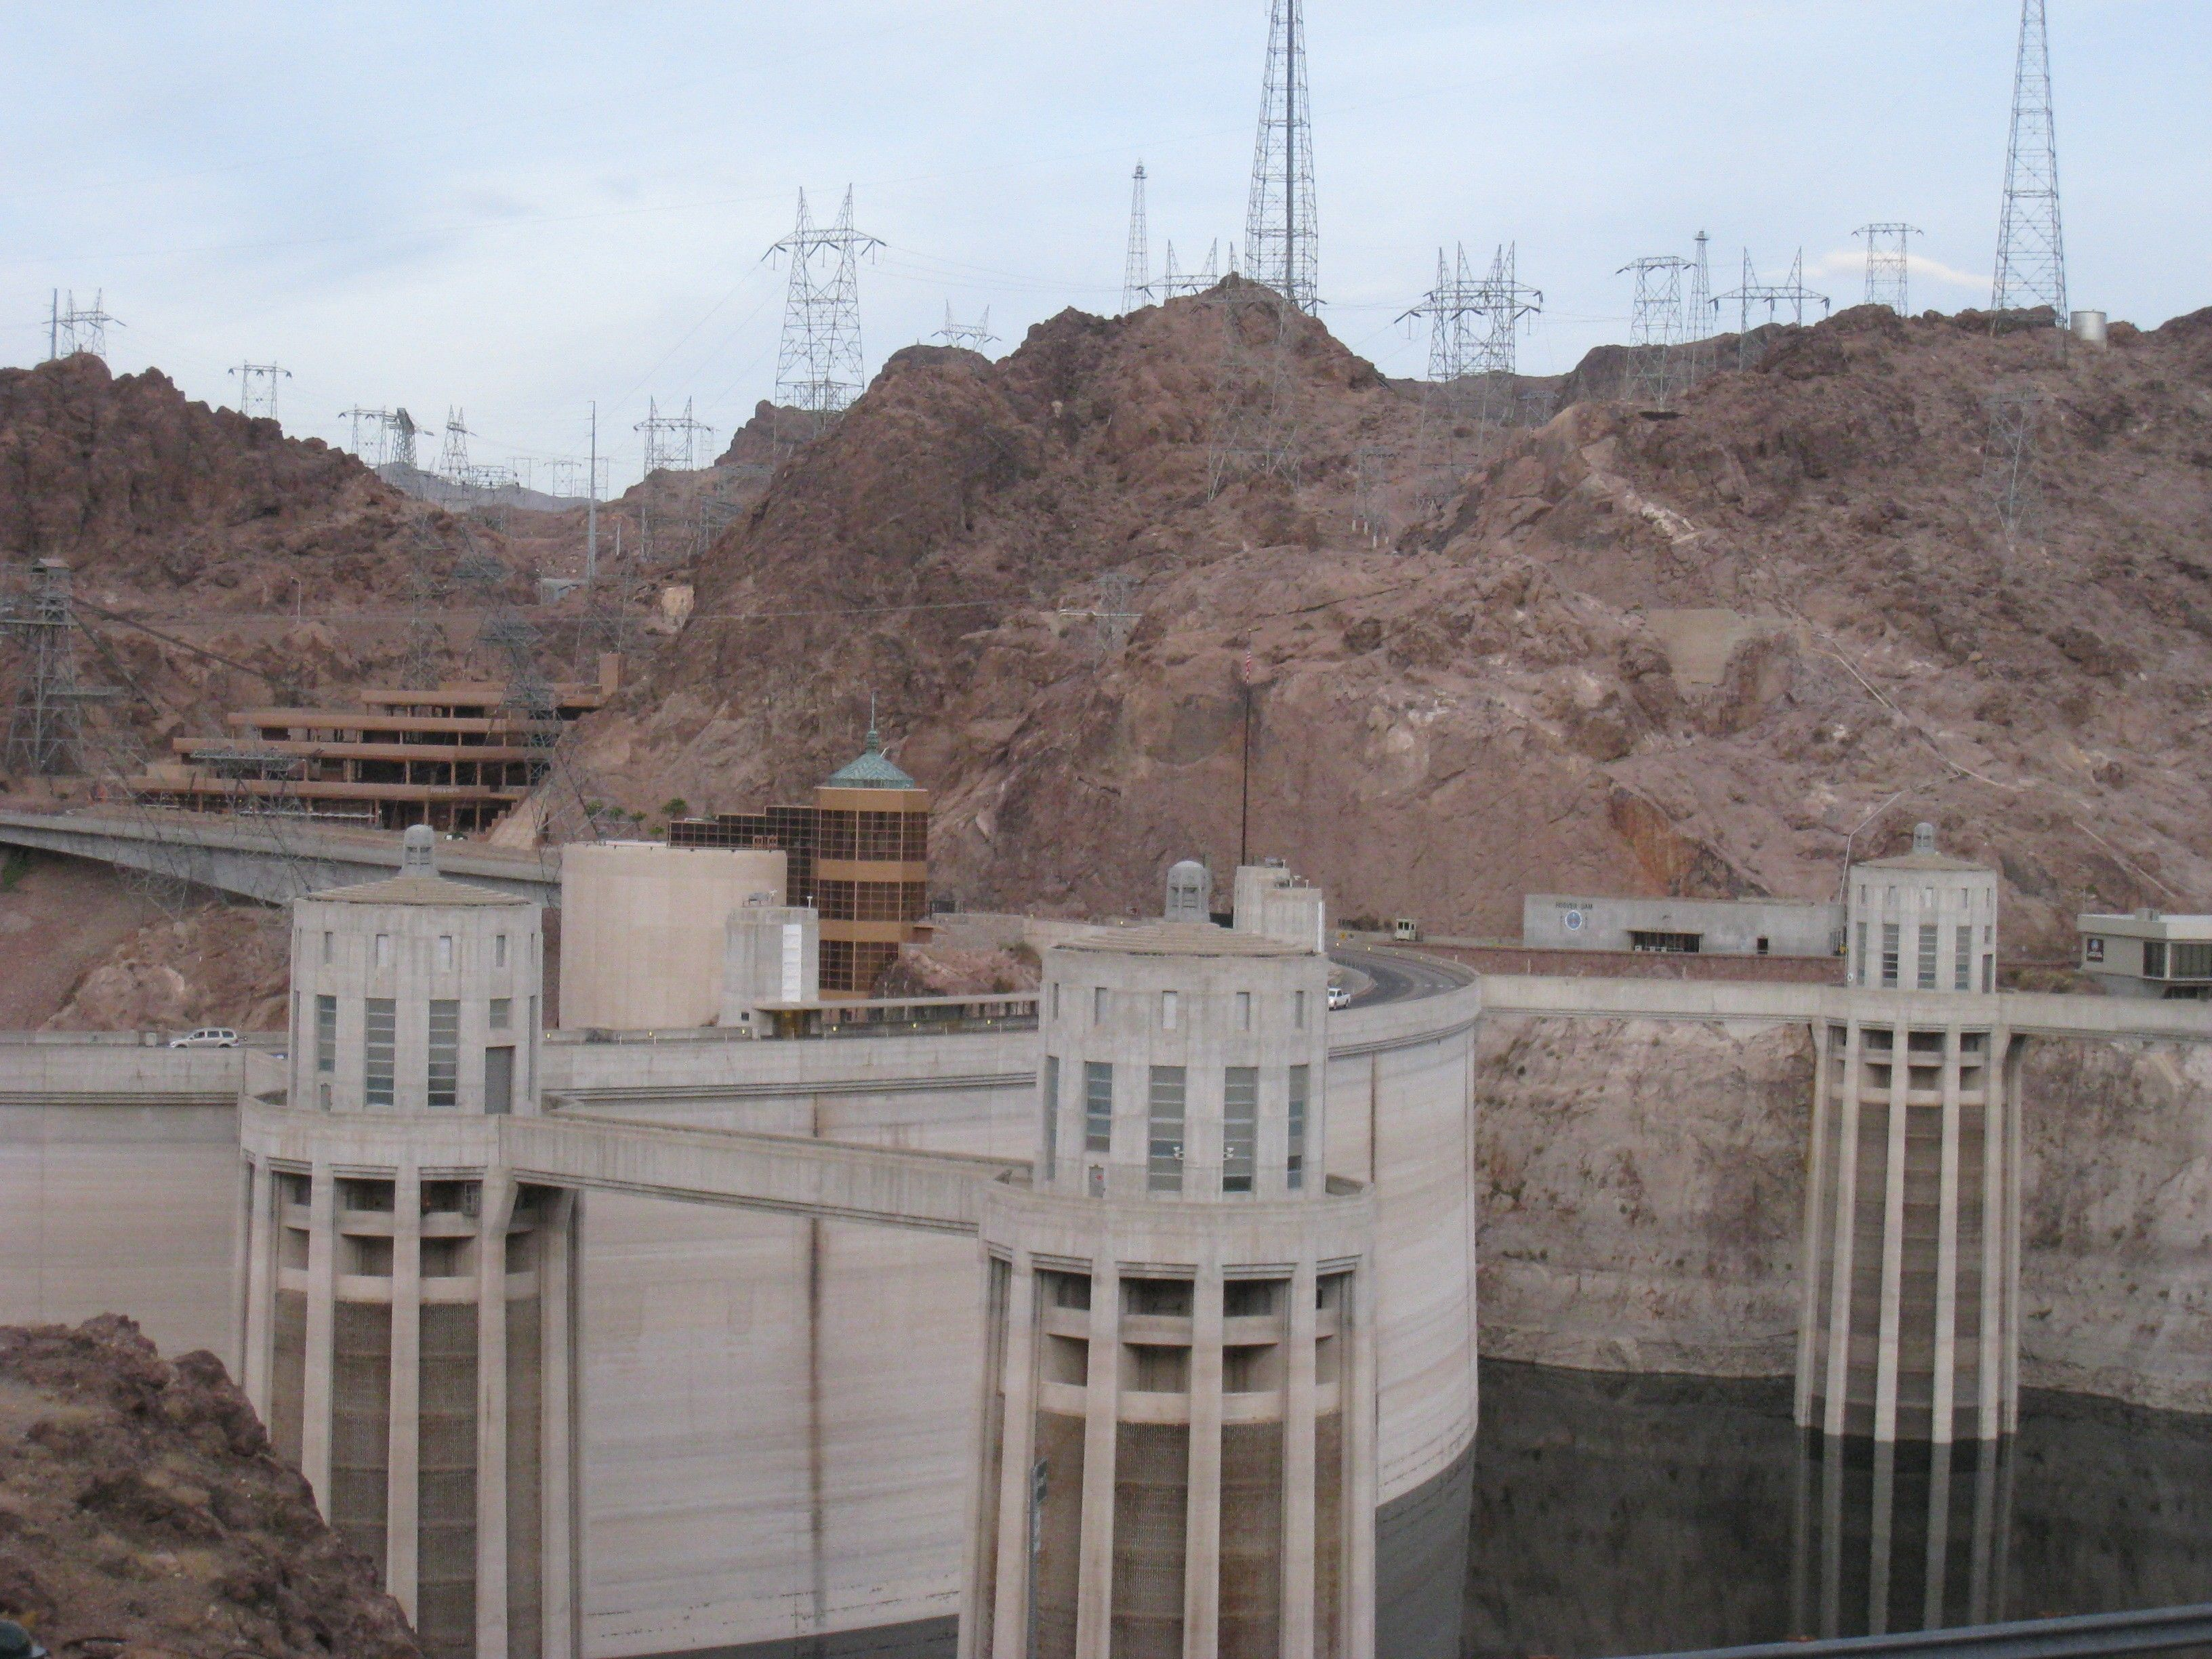 Modern: Hoover Dam Nv Nevada Dams Wallpapers for HD 16:9 High